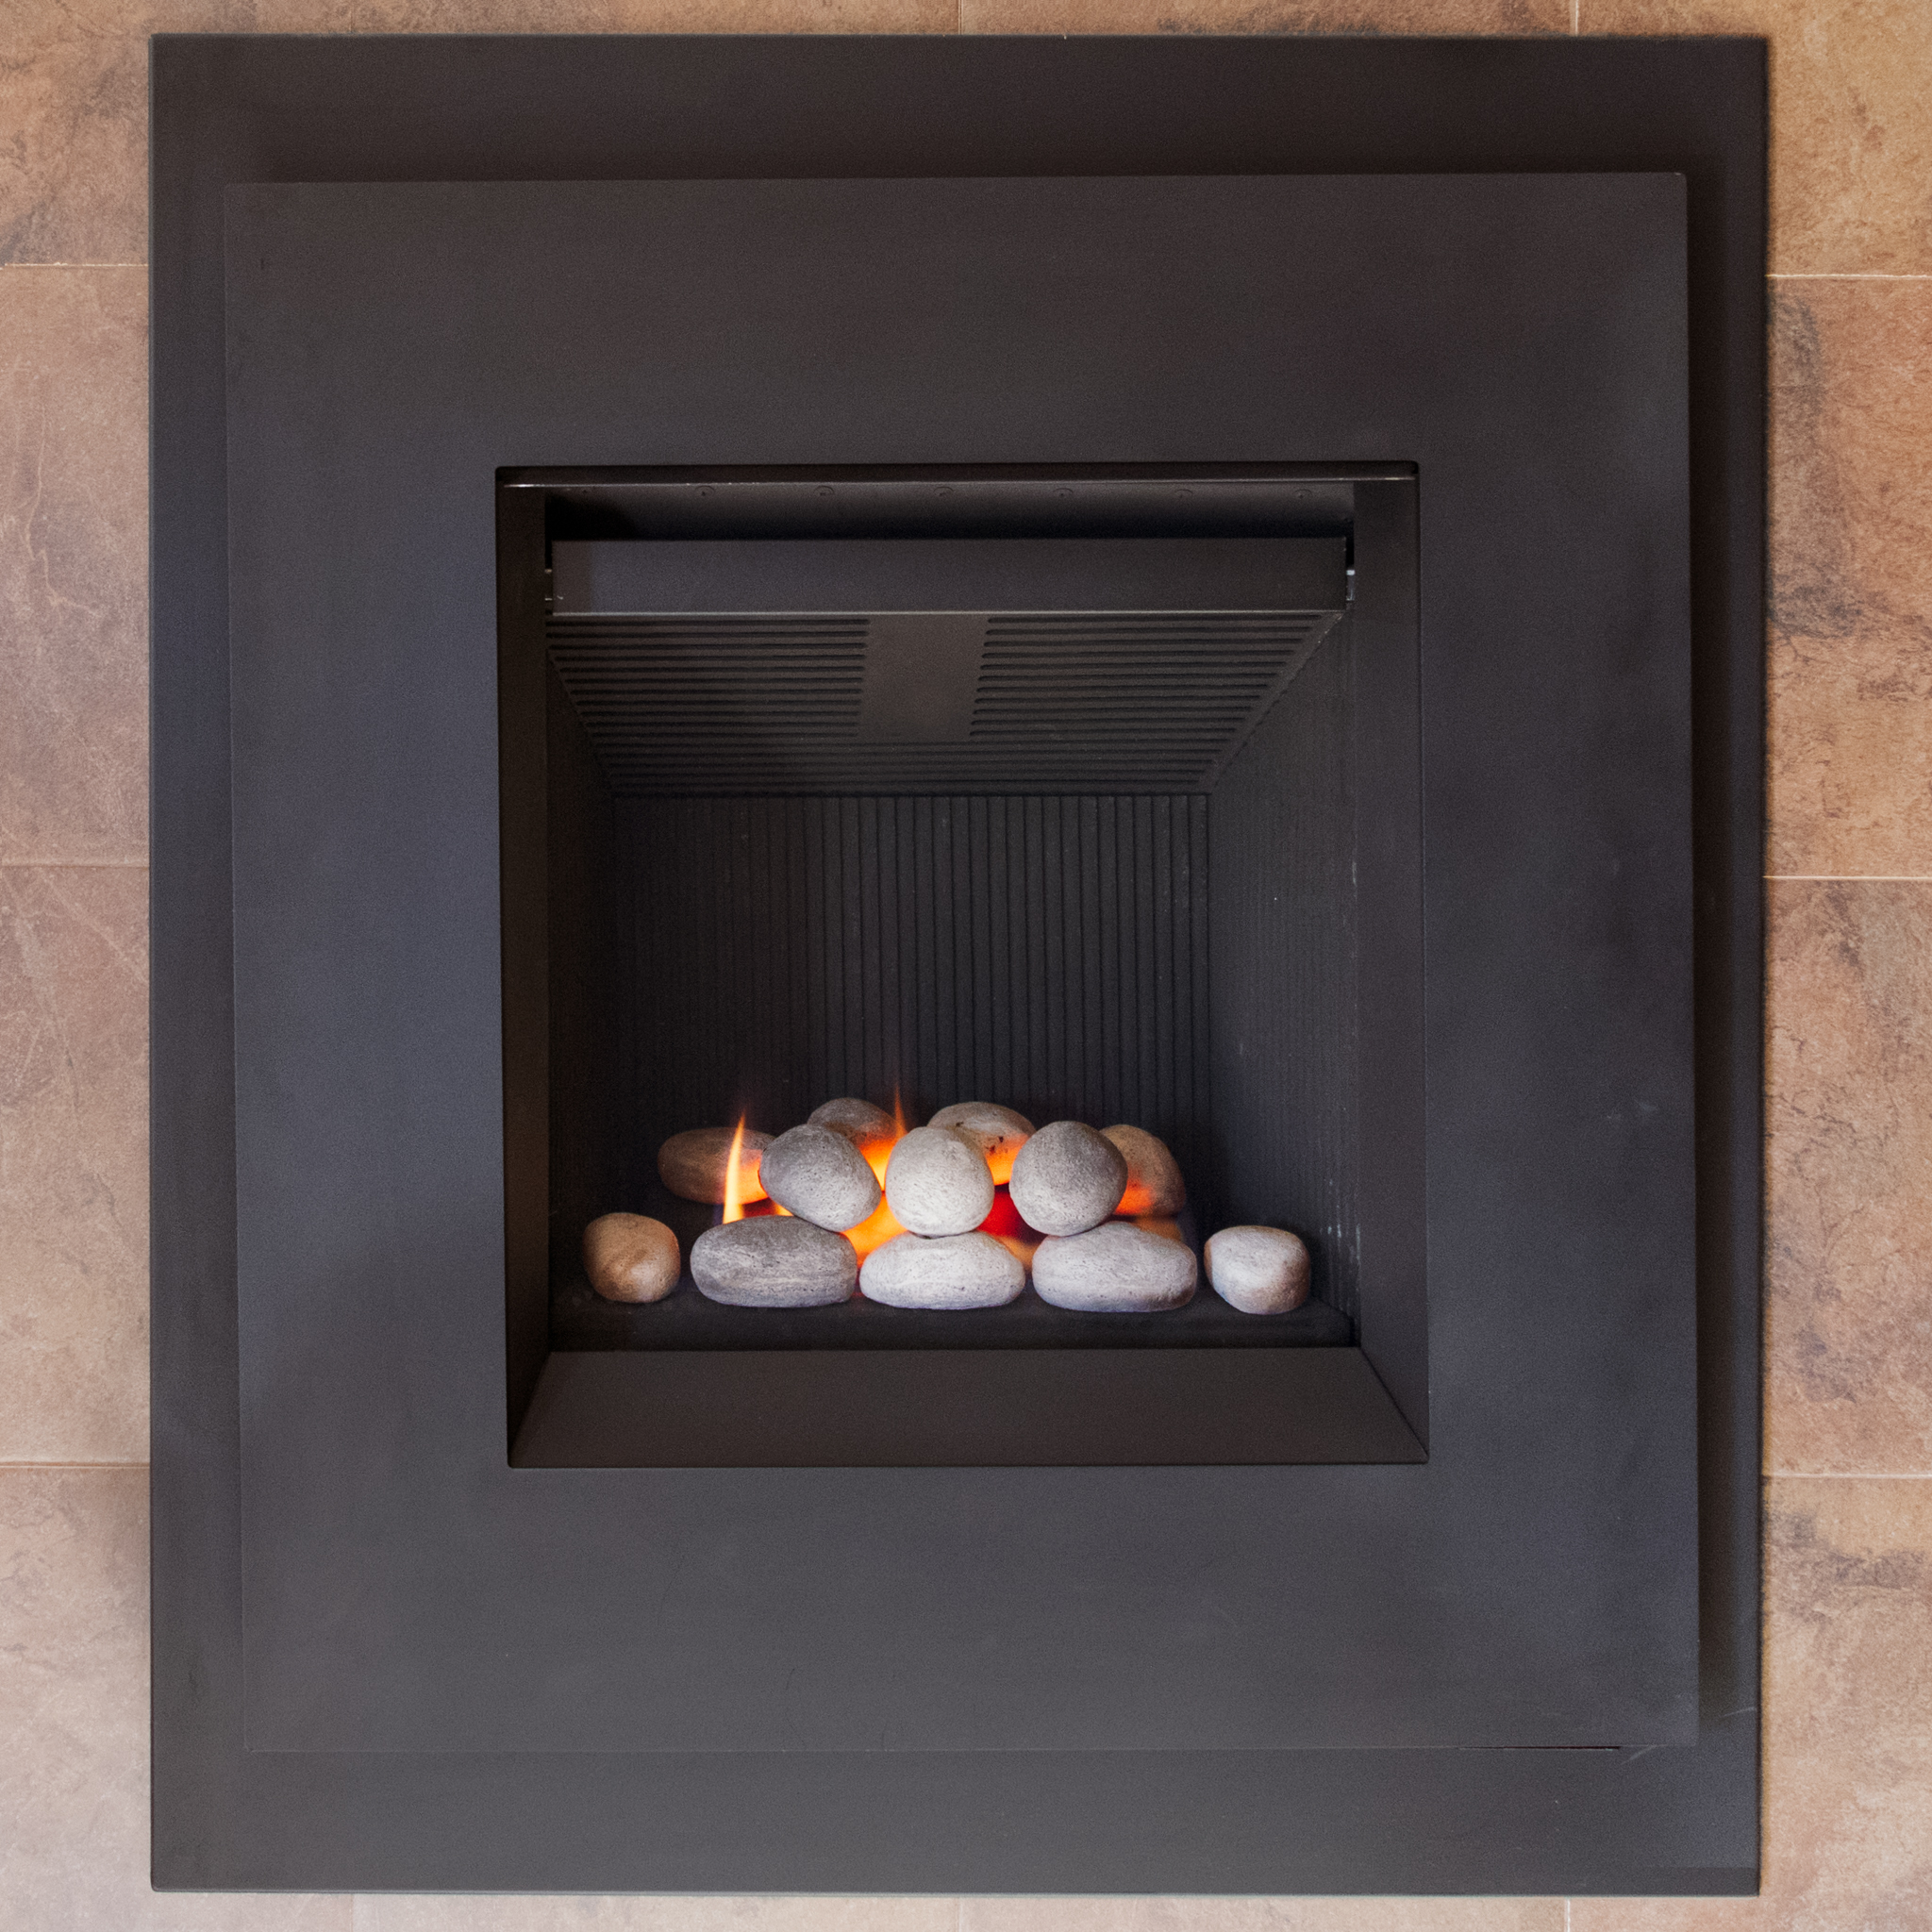 Valor Portrait Ledge - ‧ Direct Vent Gas Fireplace - 20,500 BTU‧ Black Fluted Firebox Panels‧ Black Face with Finishing Kit‧ Trim Panel‧ Rock Media Kit‧ Maxitrol Remote Control‧ Fan – Not Included‧ Vertically oriented firebox‧ Best suited for bedrooms – kitchens – offices